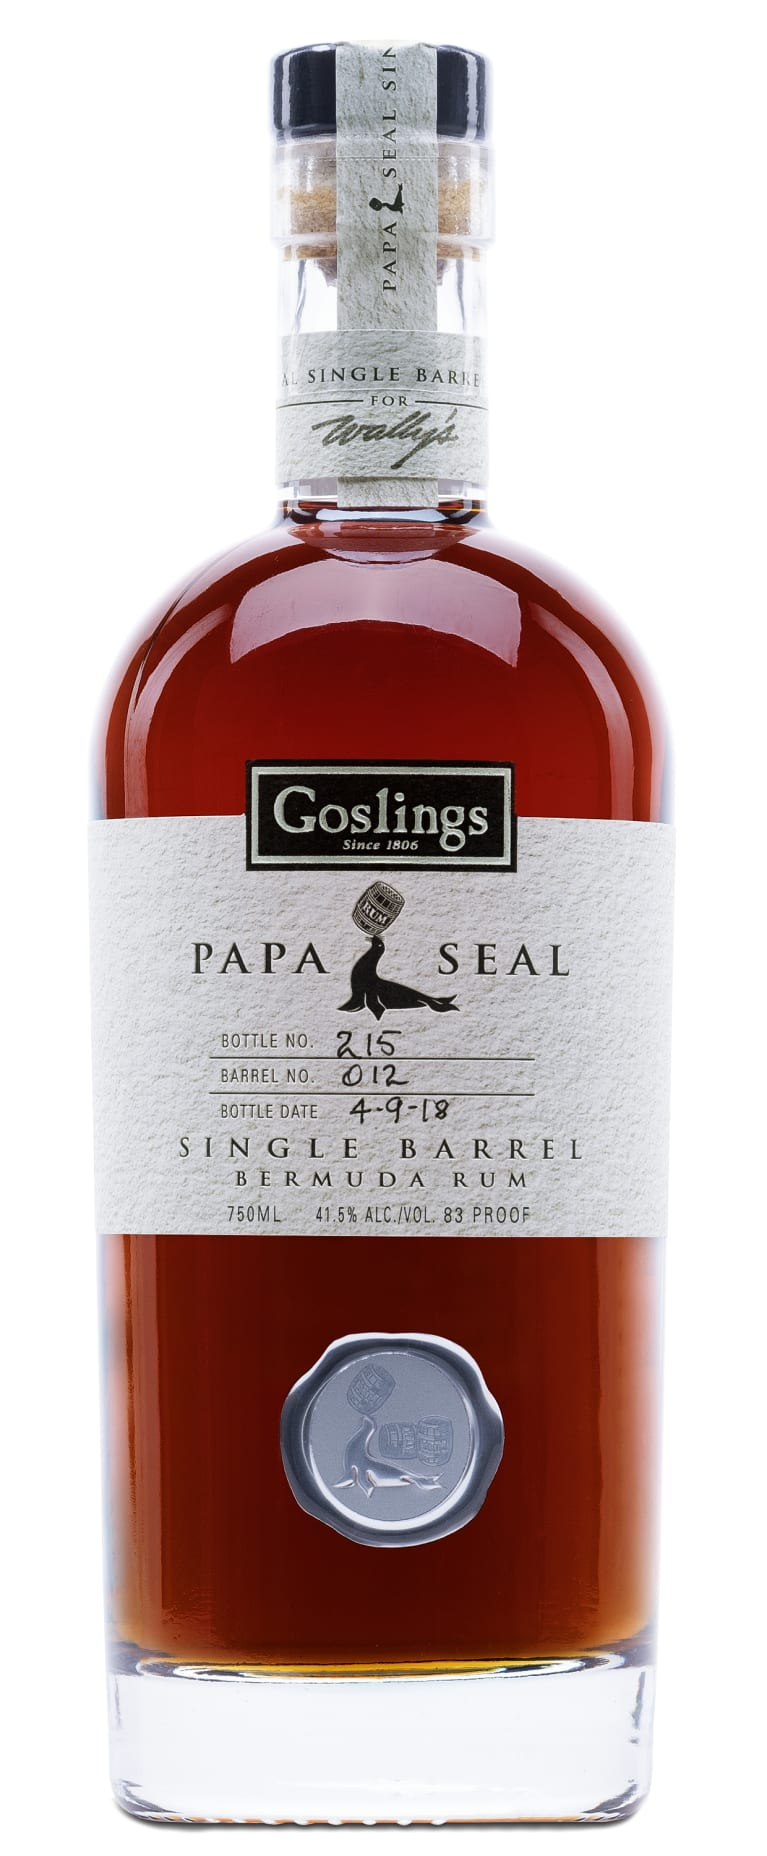 GOSLINGS PAPA SEAL RUM 750ML